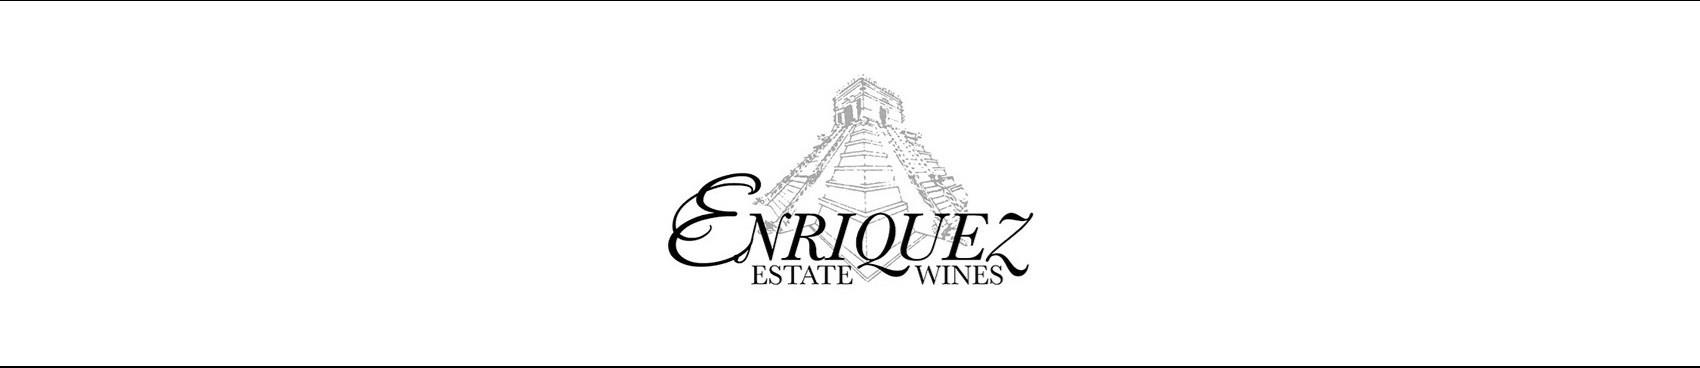 A image of Enriquez Estate Wines